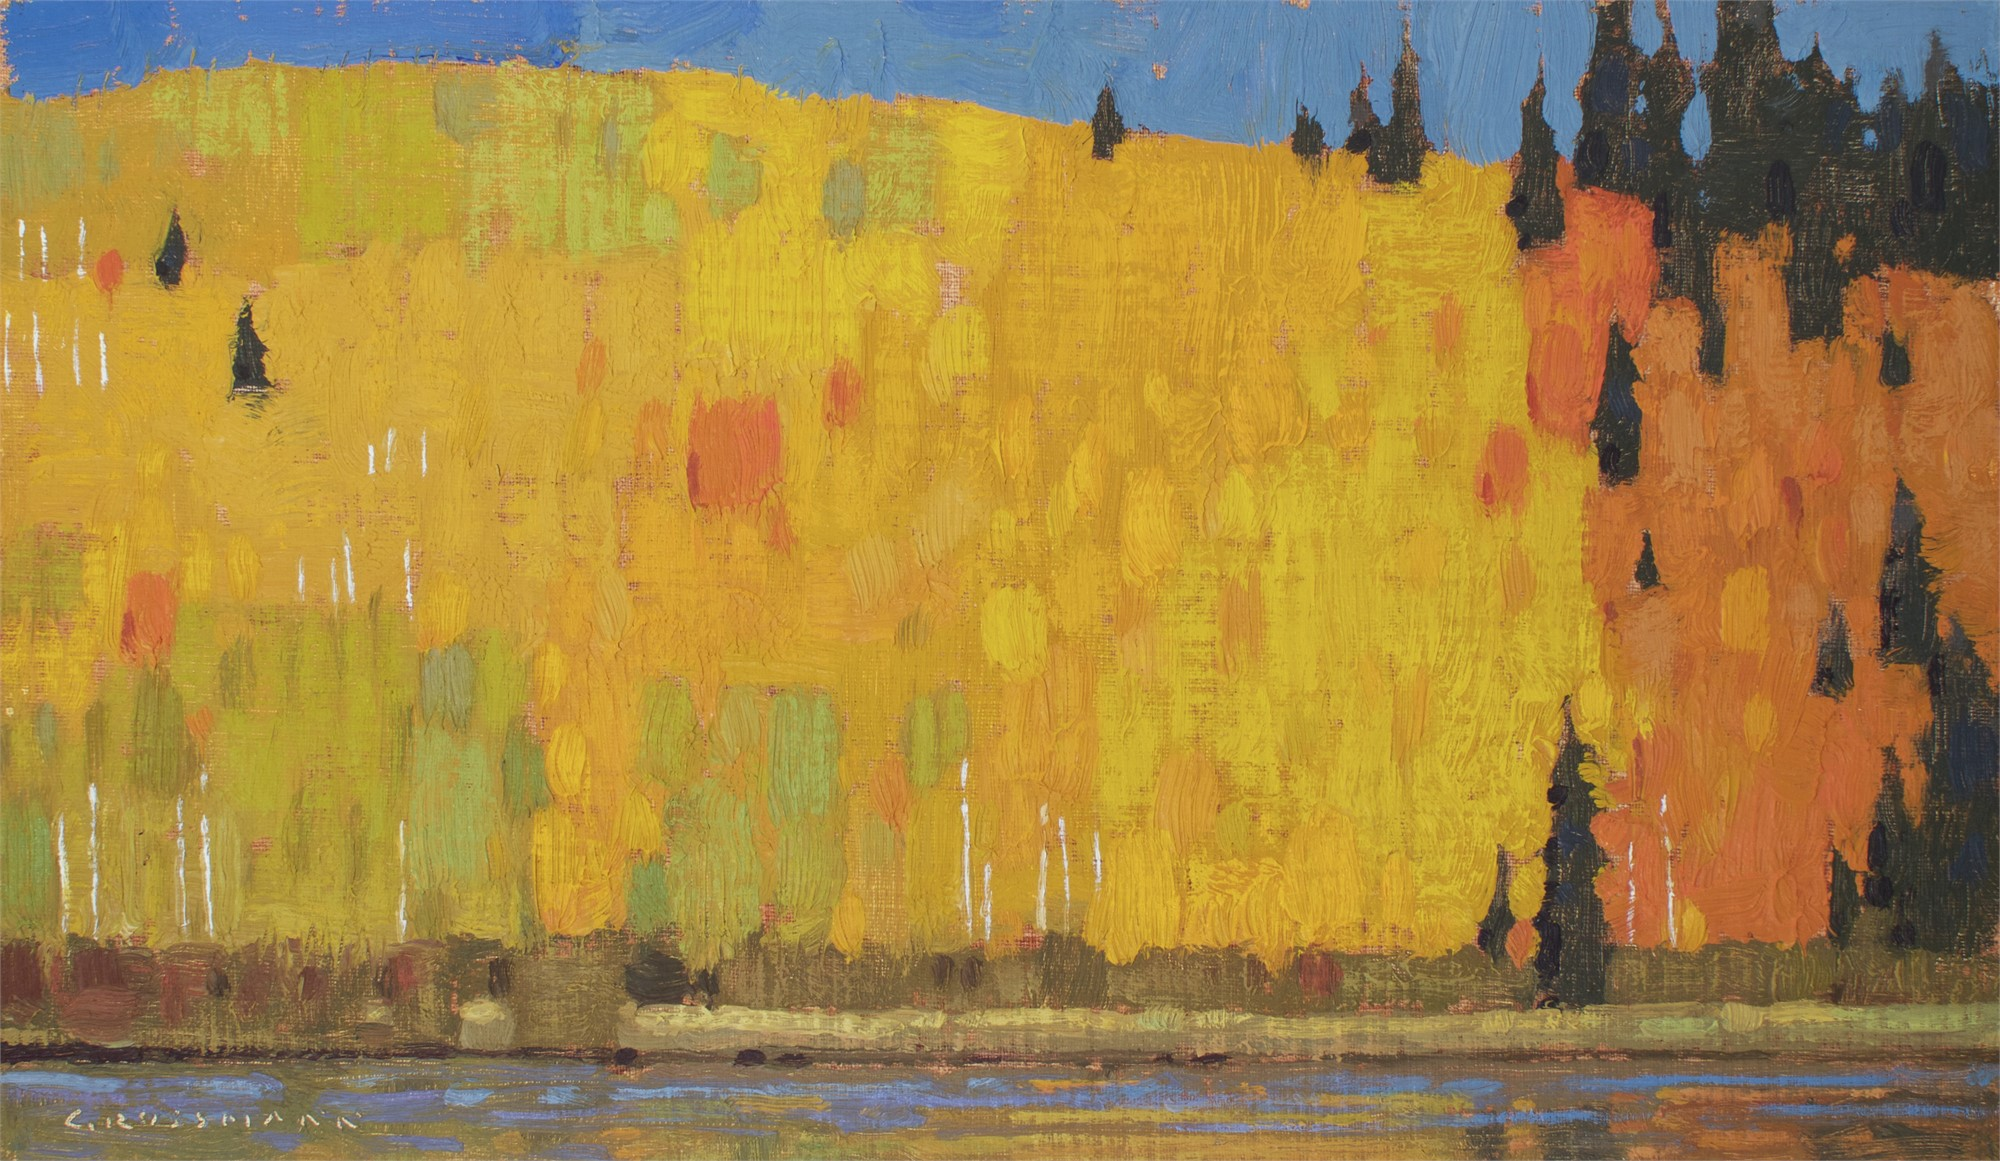 September Aspen and Pine Patterns by David Grossmann